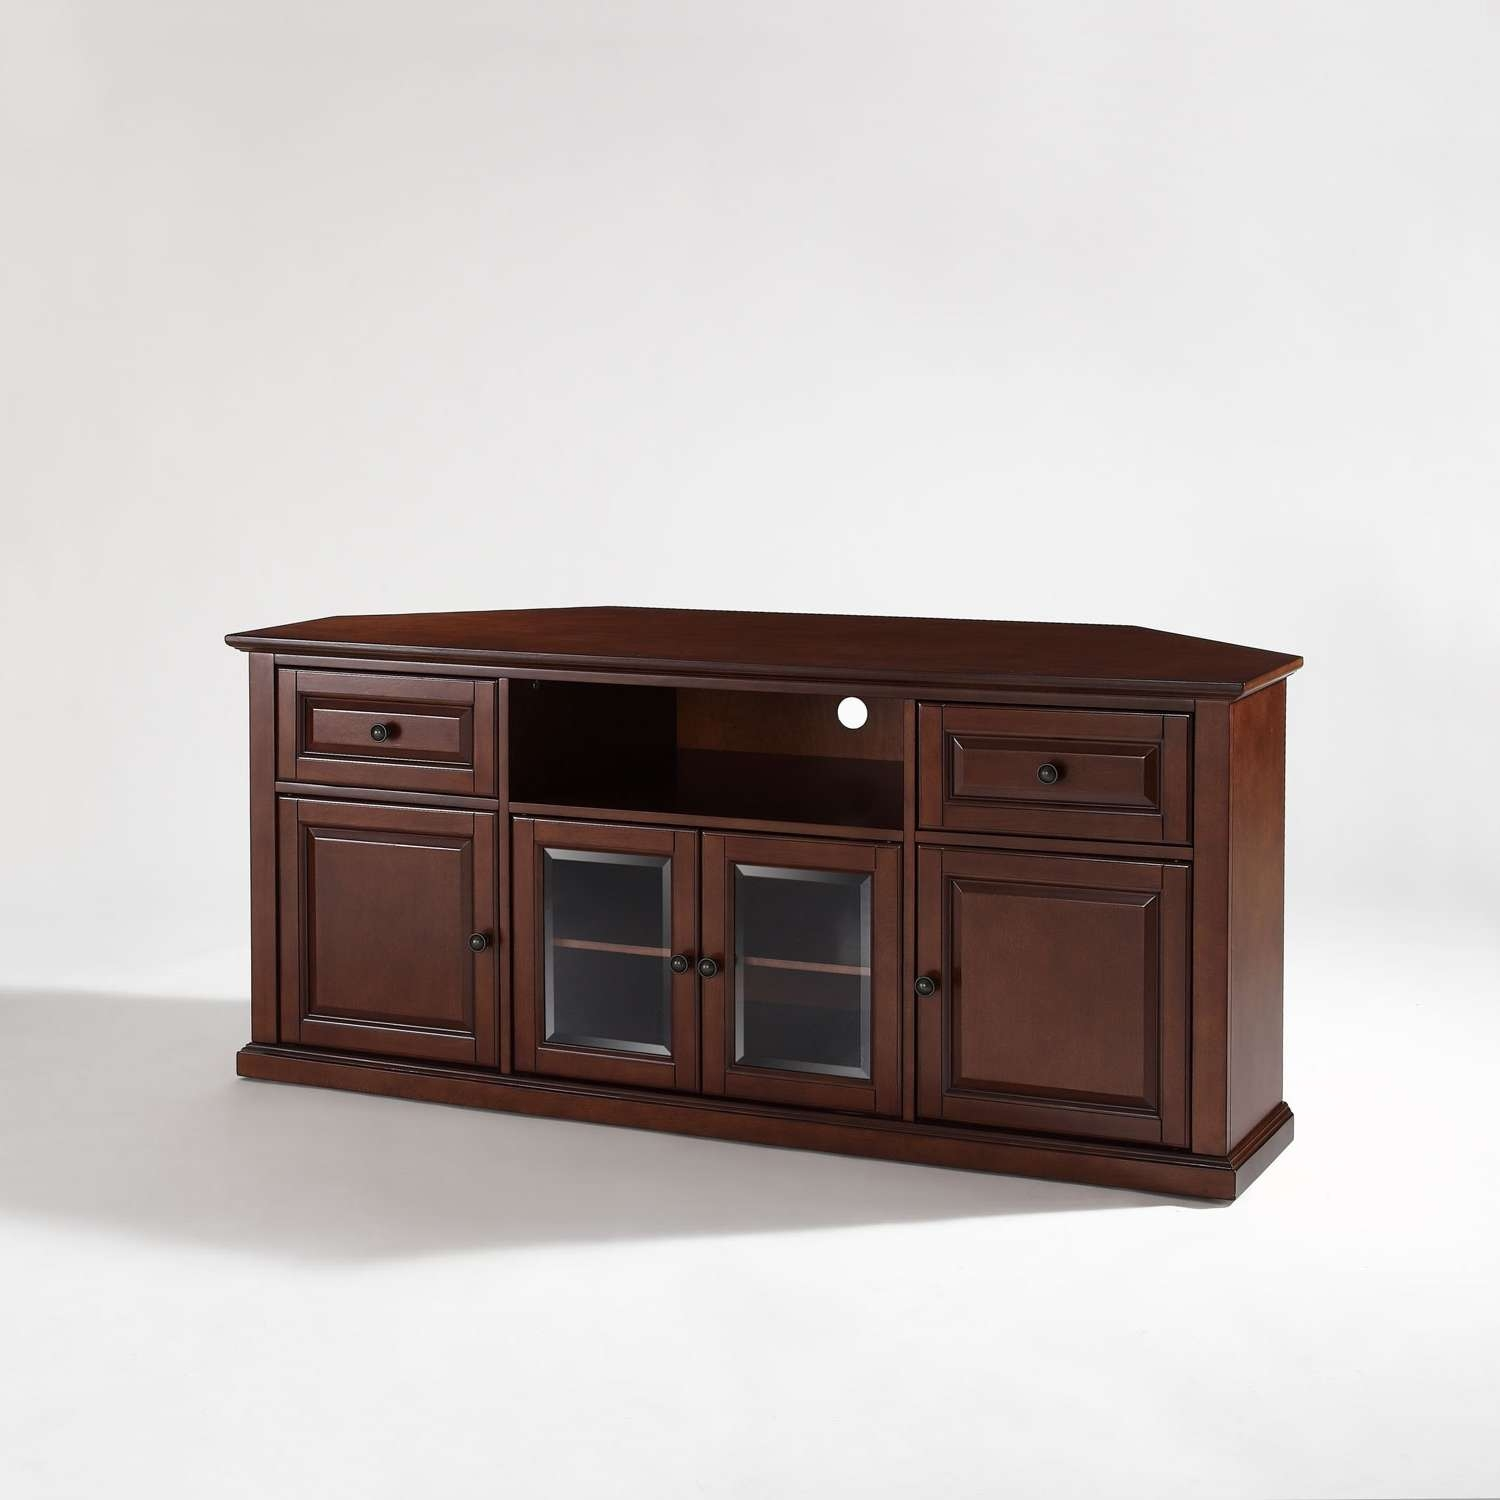 Asian Corner Tv Cabinet | Cabinet Ideas Regarding Asian Tv Cabinets (View 5 of 20)